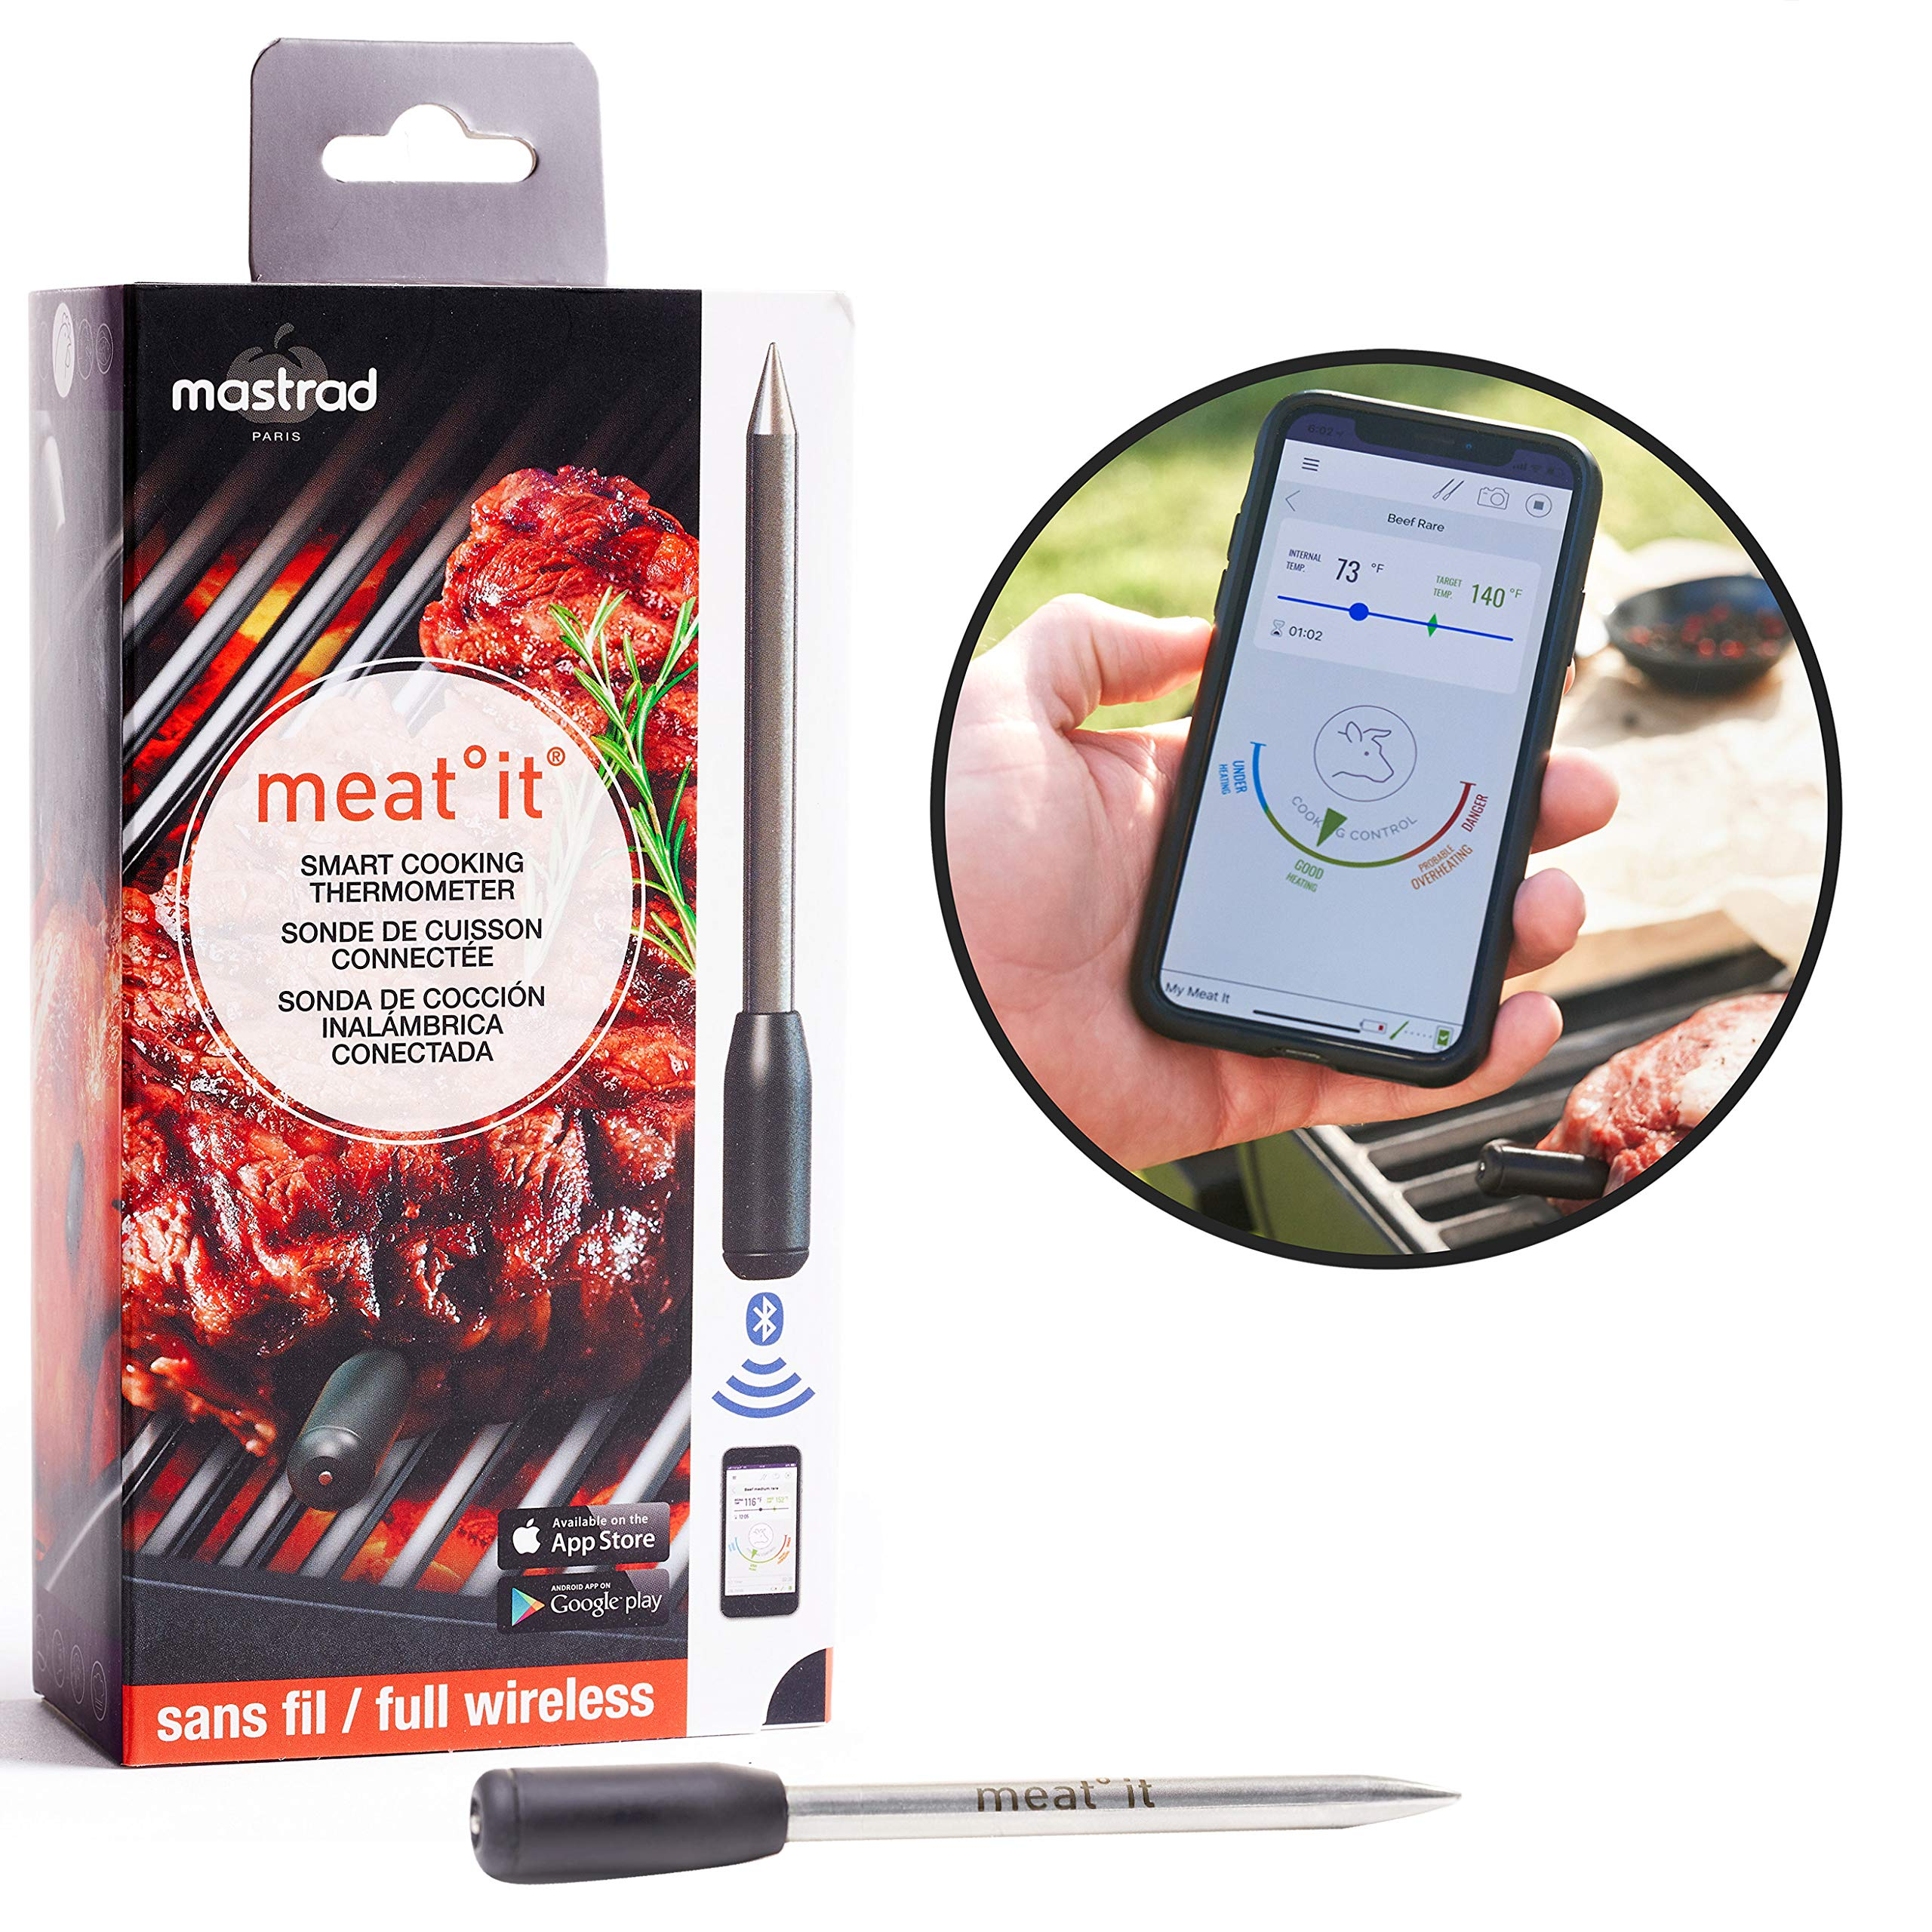 Meat Thermometer | meat it Wireless Grill and BBQ Cooking Sensor | Connects Via Bluetooth To Free Cooking App